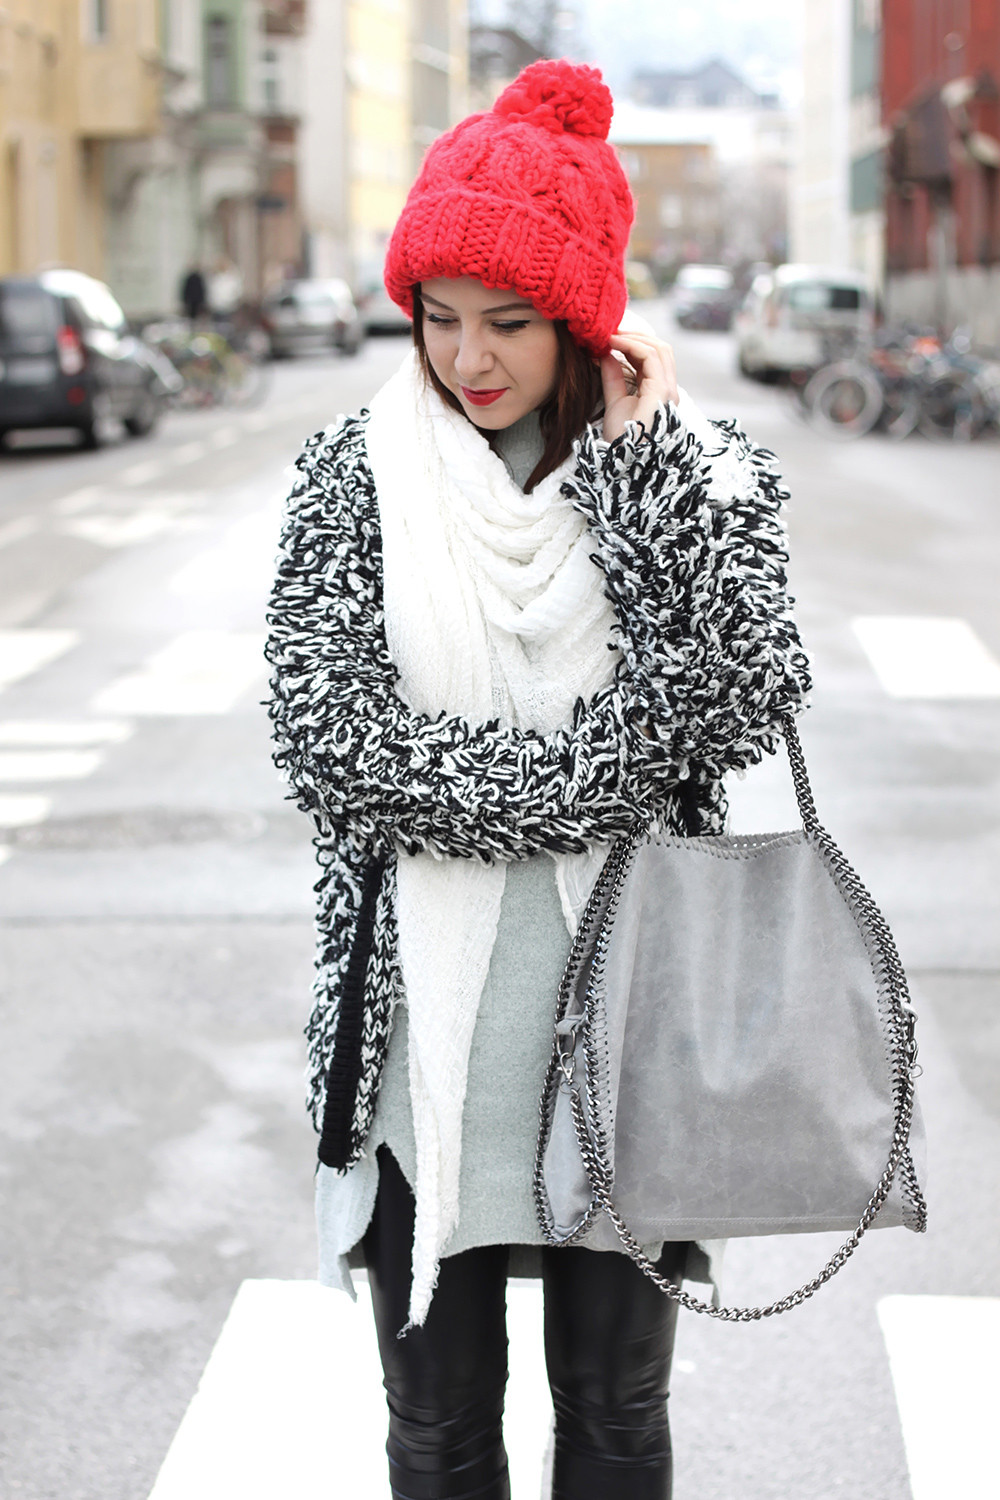 who is mocca, fashionblog, blogger tirol, austria, oesterreich, oasap strickpullover grau, wetlook leggings asos, fell booties zara, rote bommelmuetze topshop, stella mccartney lookalike falabella, xl schal tuch weiss, strickcardign glamorous, isabel marant lookalike, zalando